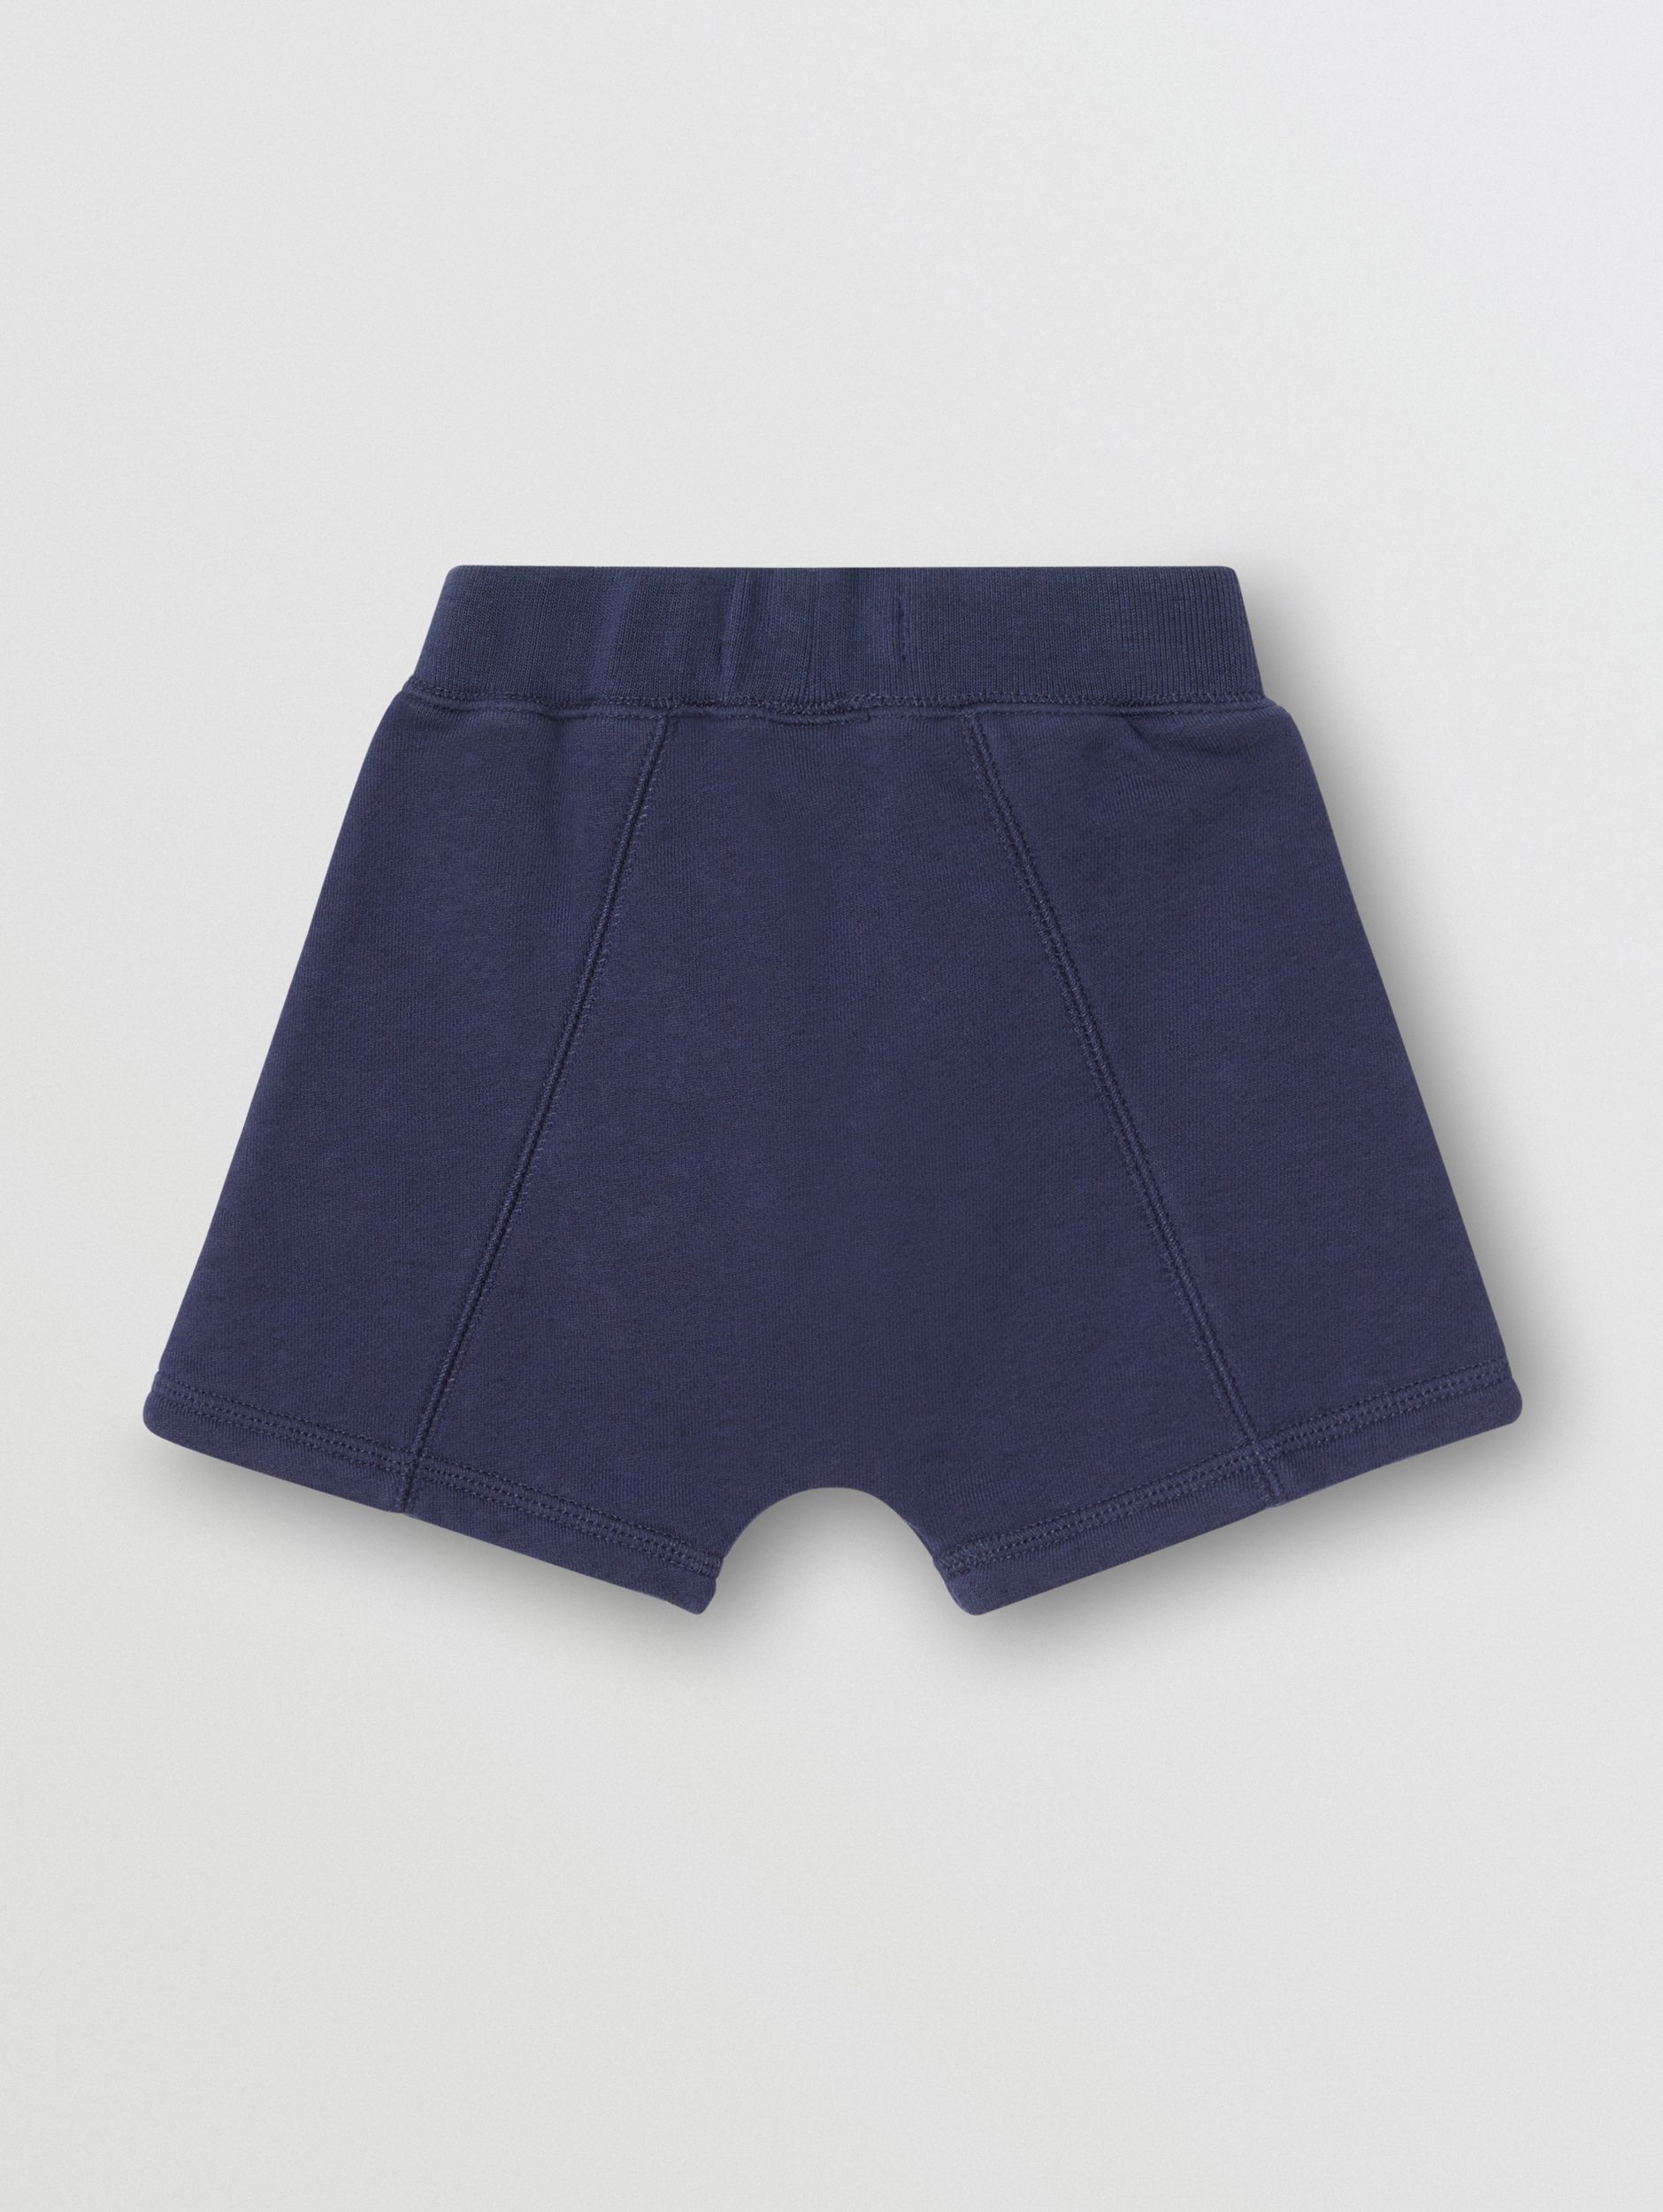 Kingdom Motif Cotton Drawcord Shorts in Slate Blue Melange - Children | Burberry United Kingdom - 4